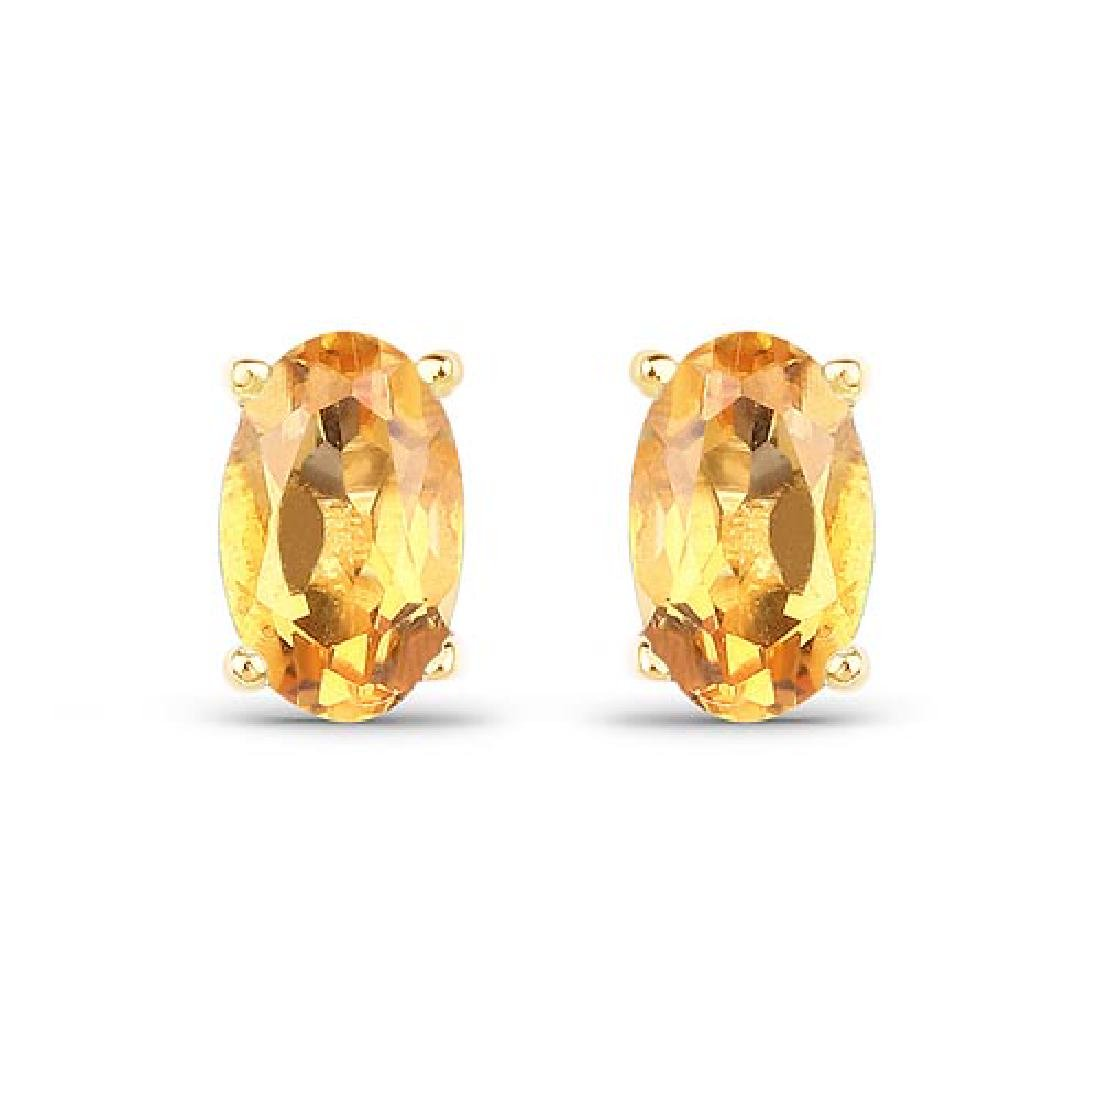 0.44 Carat Genuine Citrine 10K Yellow Gold Earrings